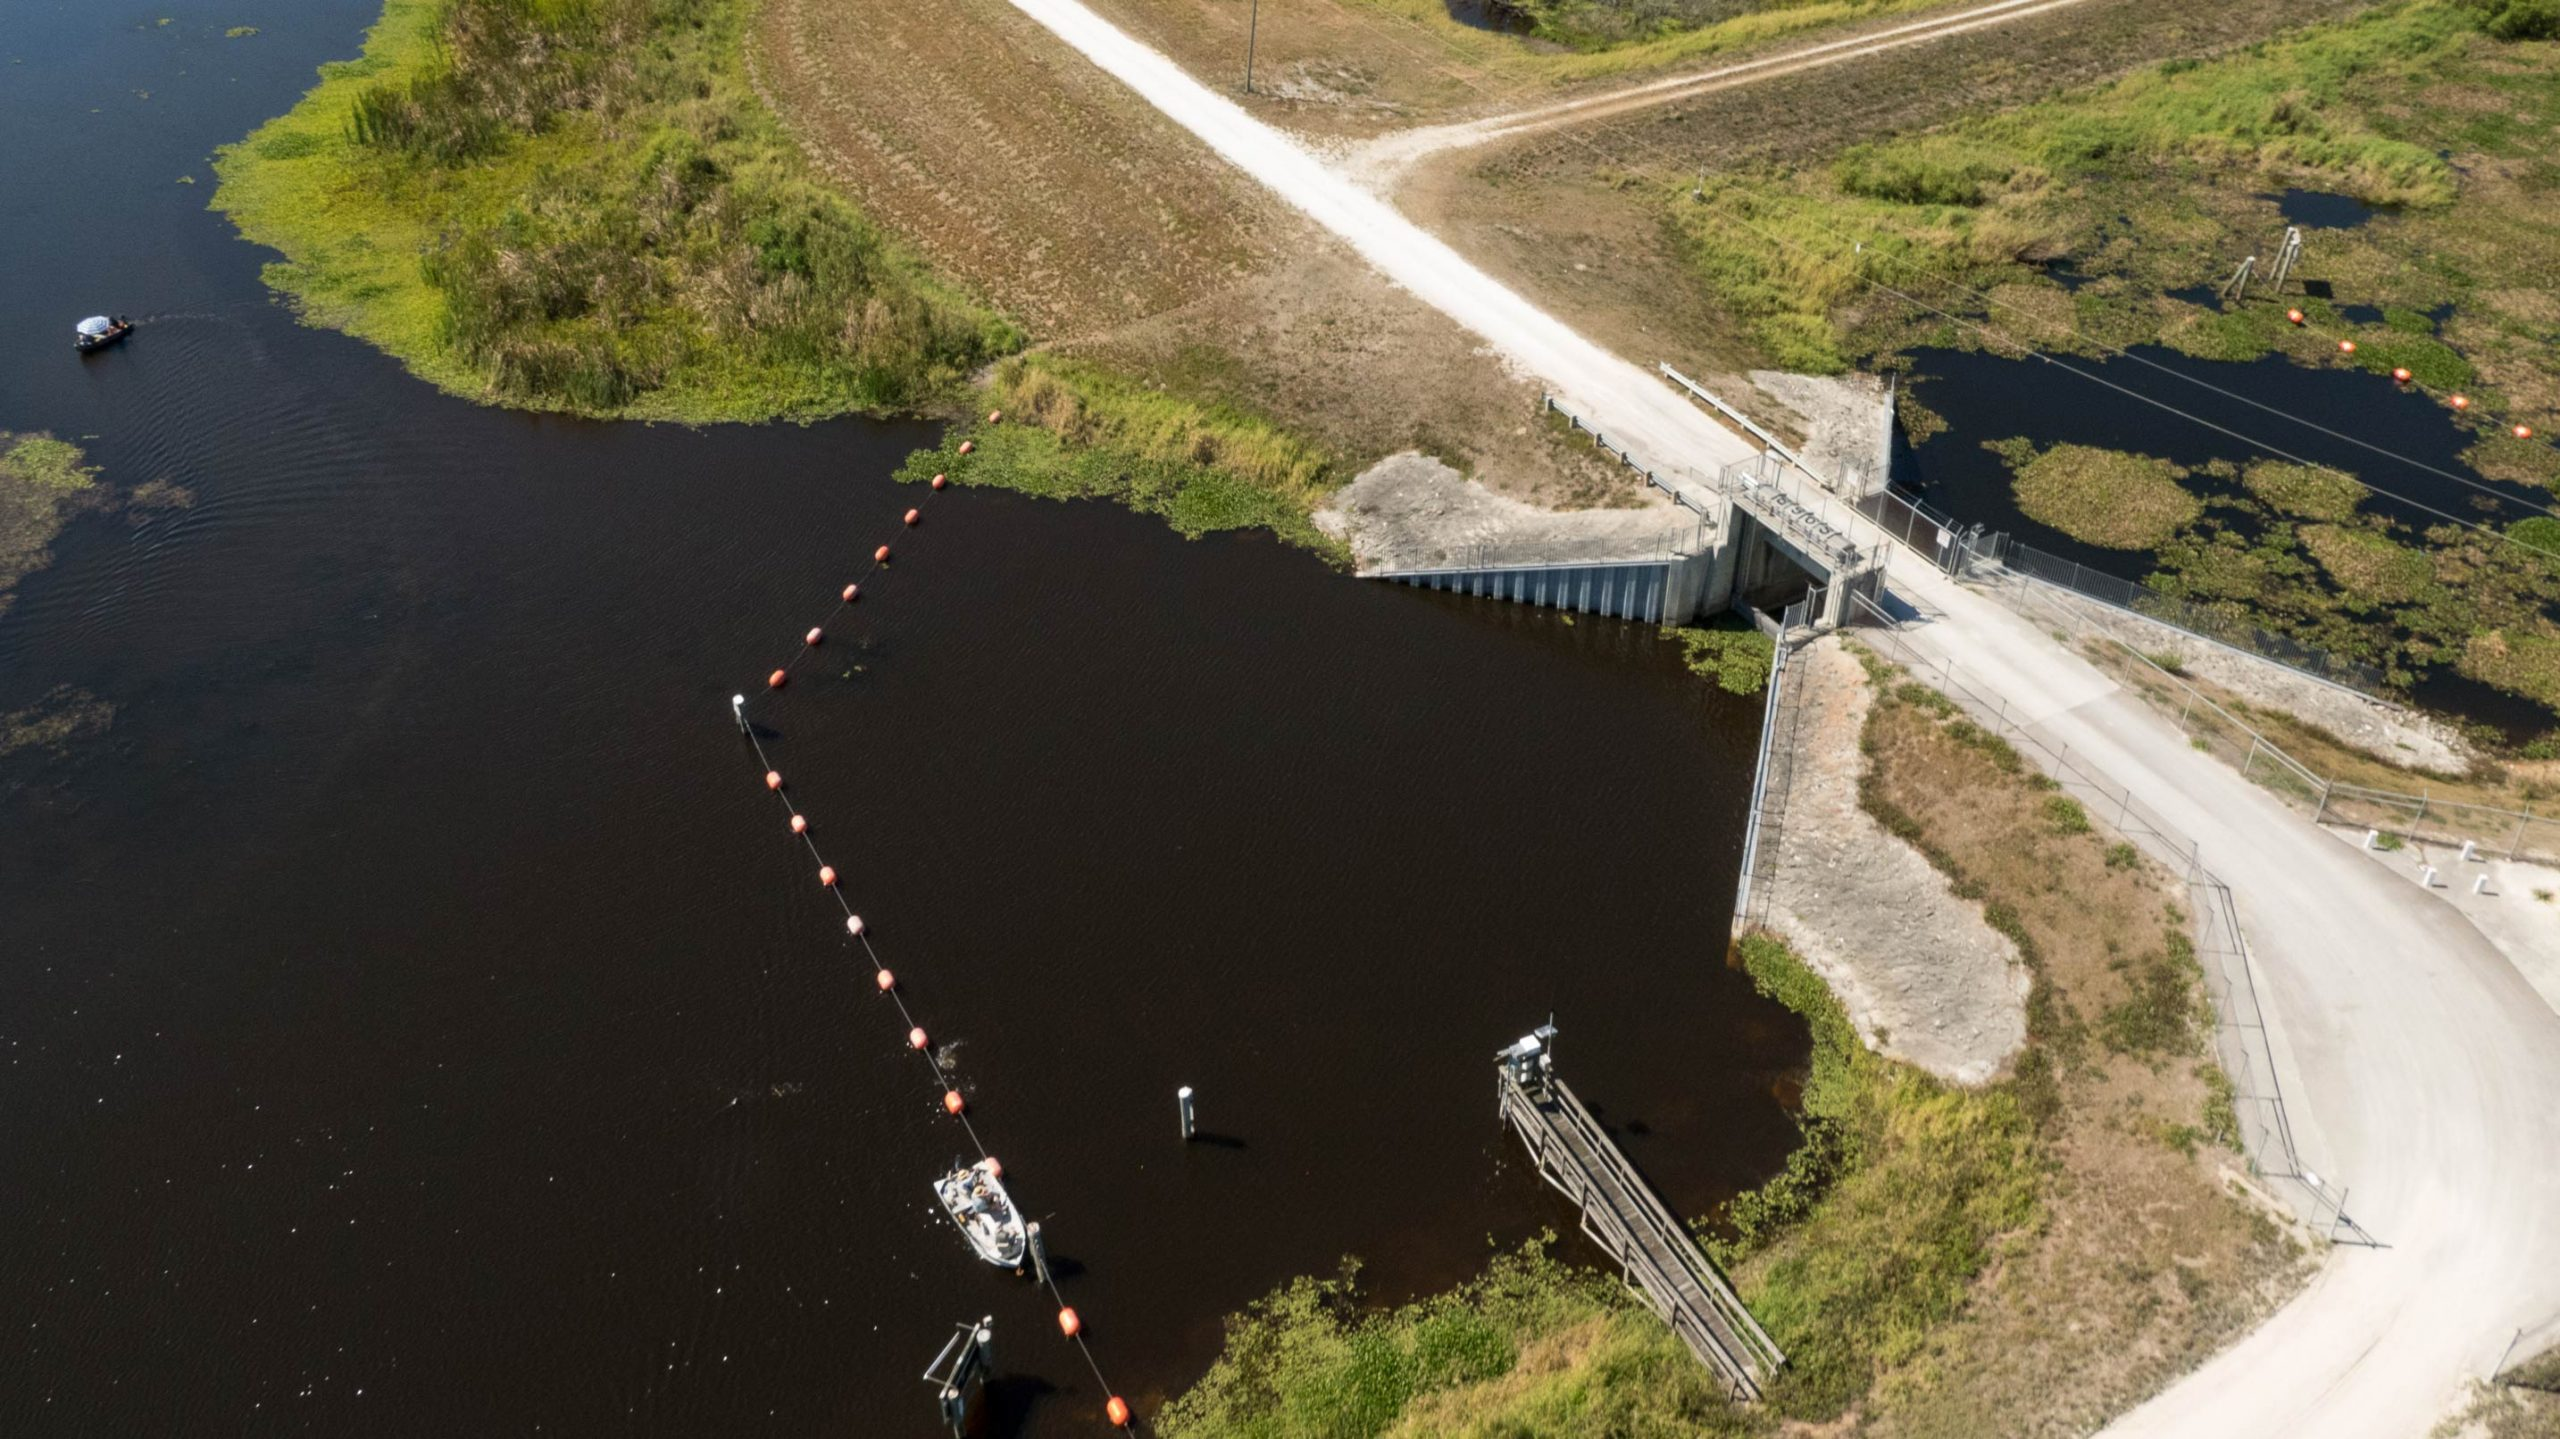 Aerial view of the S-96B water control structure